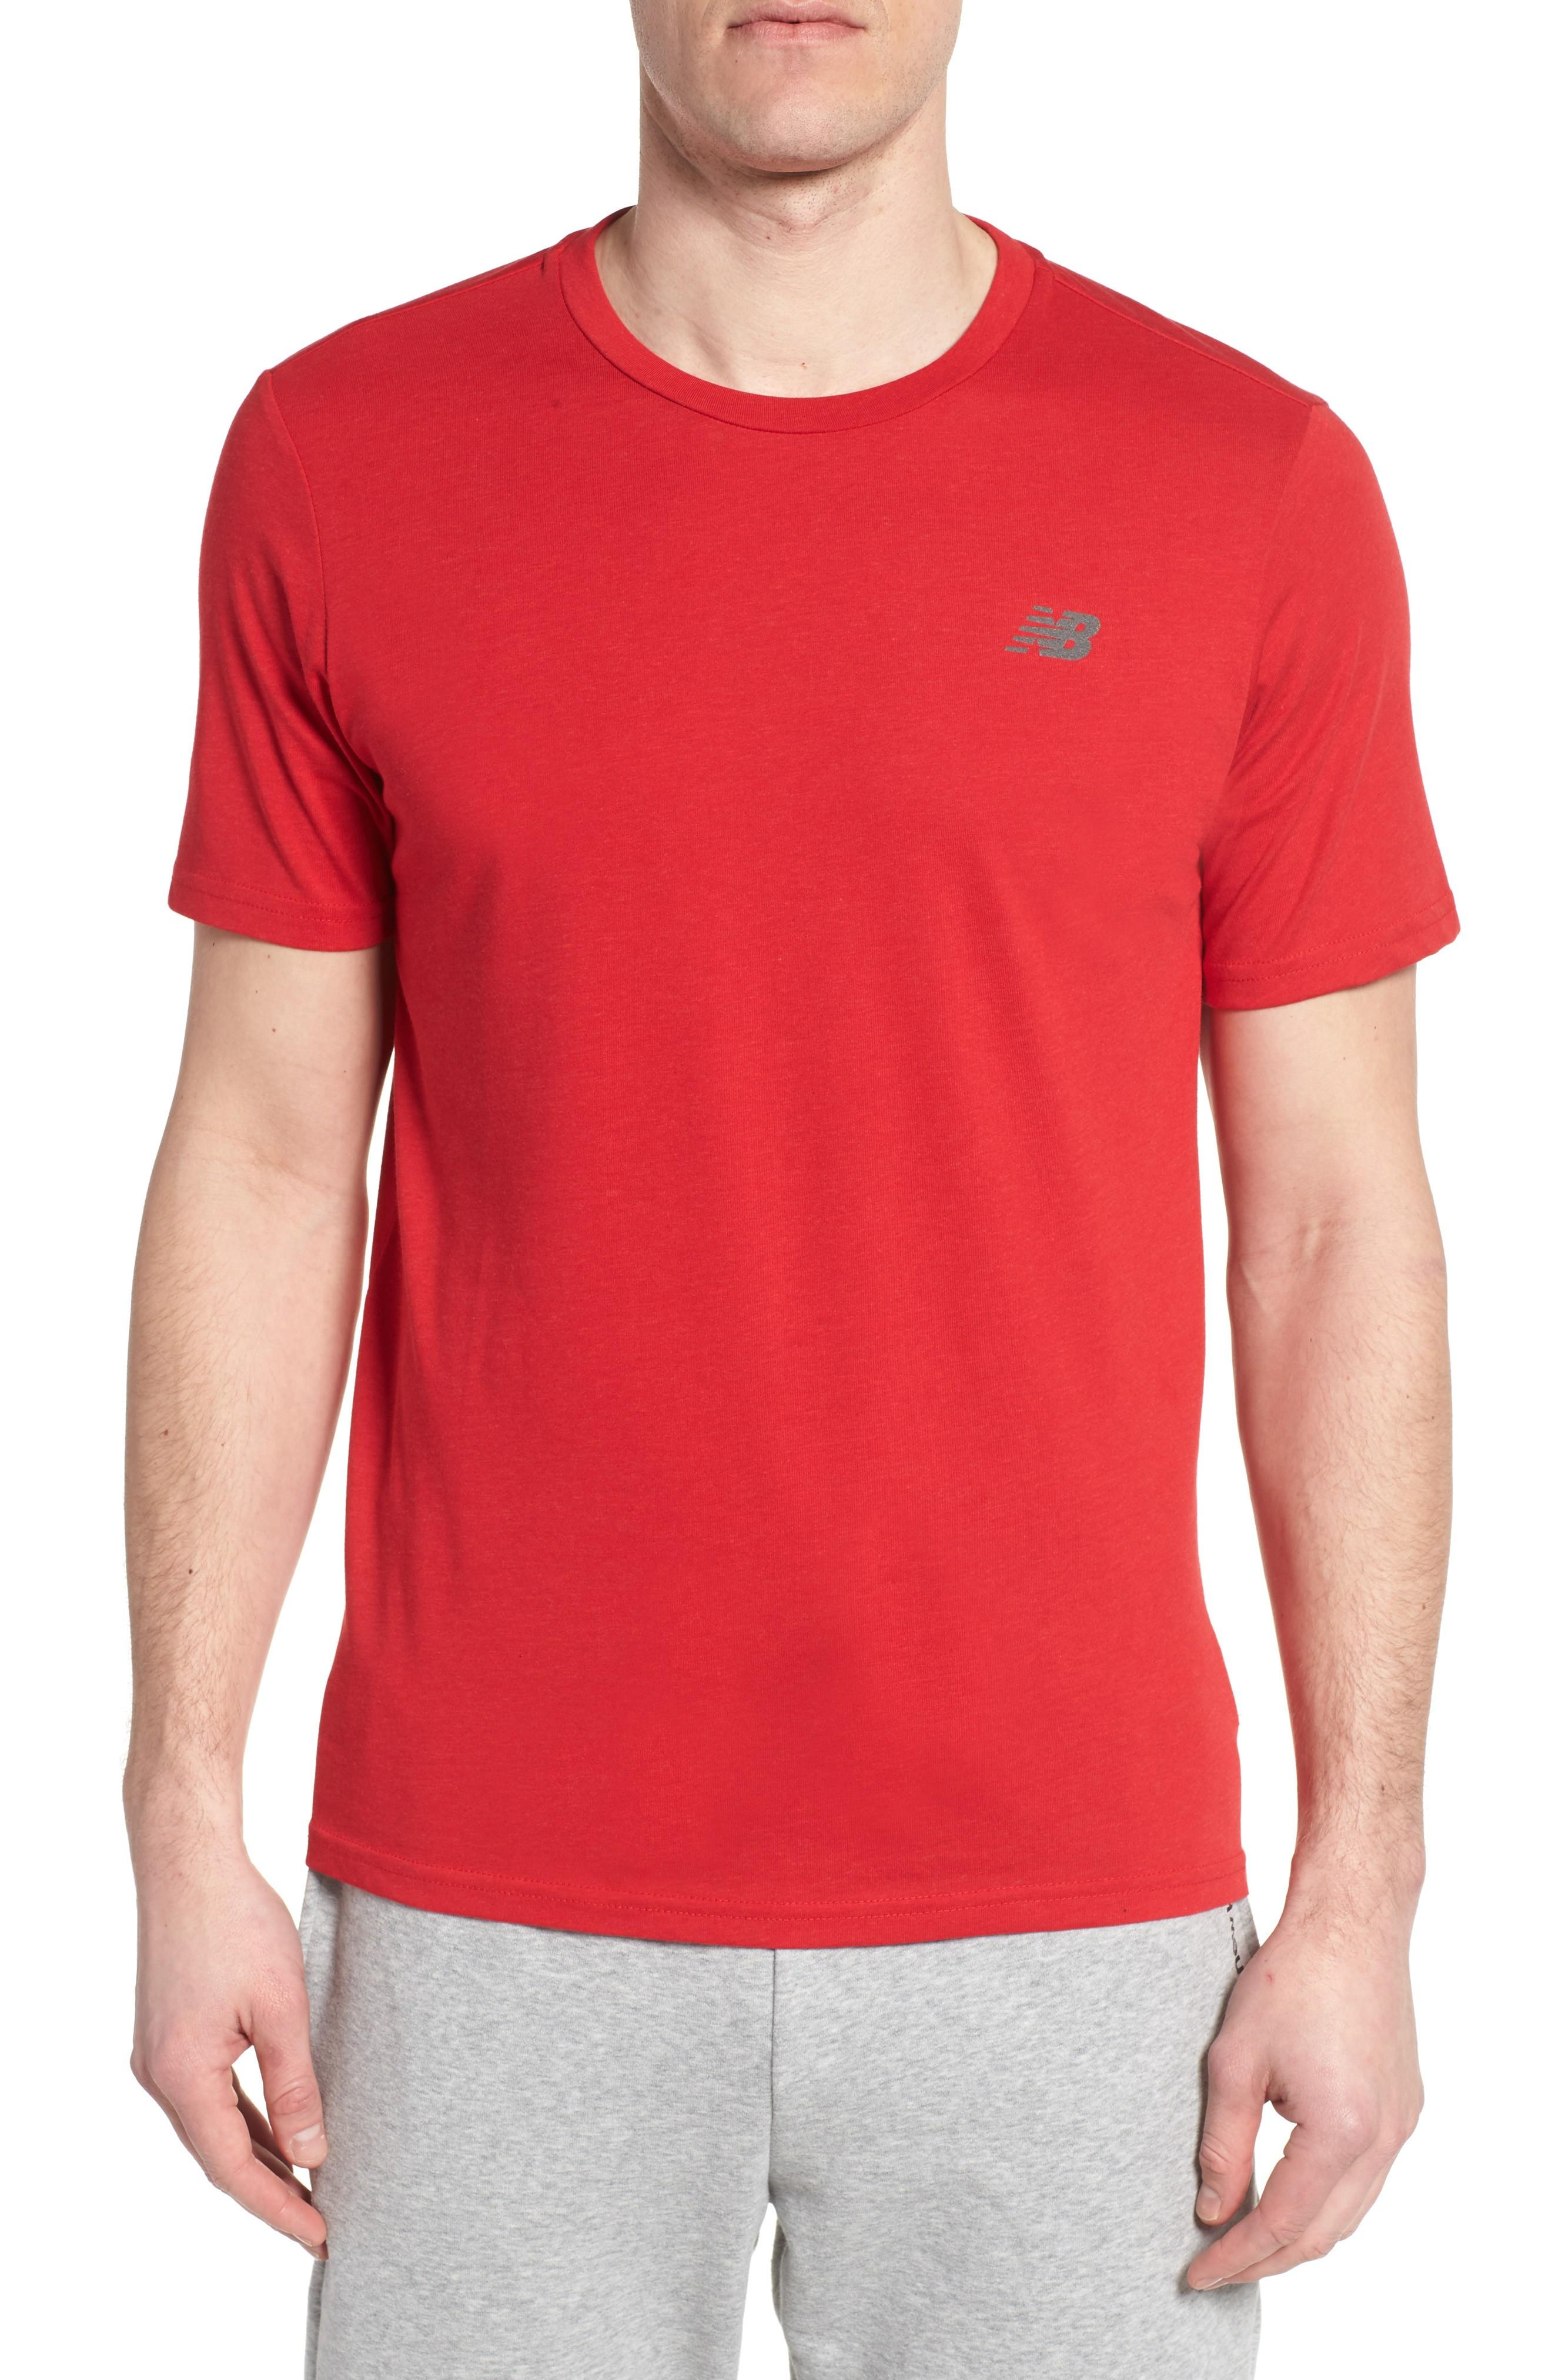 New Balance Heather Tech Crewneck T-shirt In Team Red